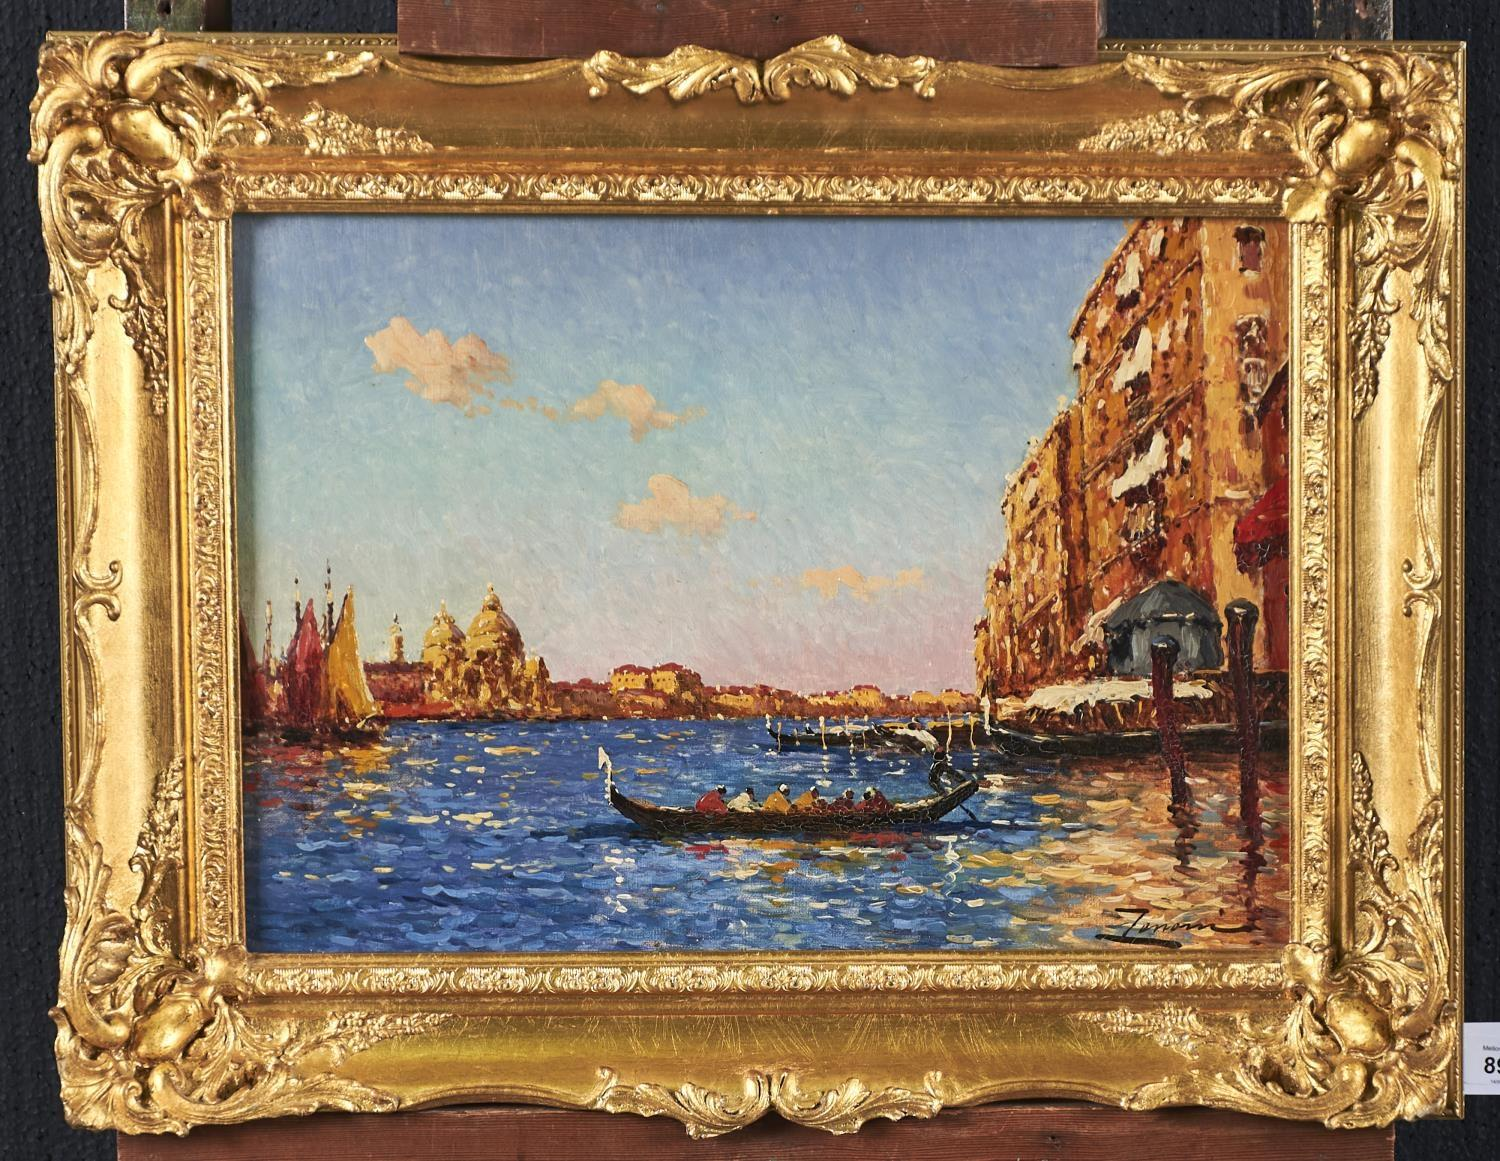 ITALIAN SCHOOL, 19TH/EARLY 20TH CENTURY - THE GRAND CANAL, VENICE, INDISTINCTLY SIGNED, OIL ON - Image 2 of 3